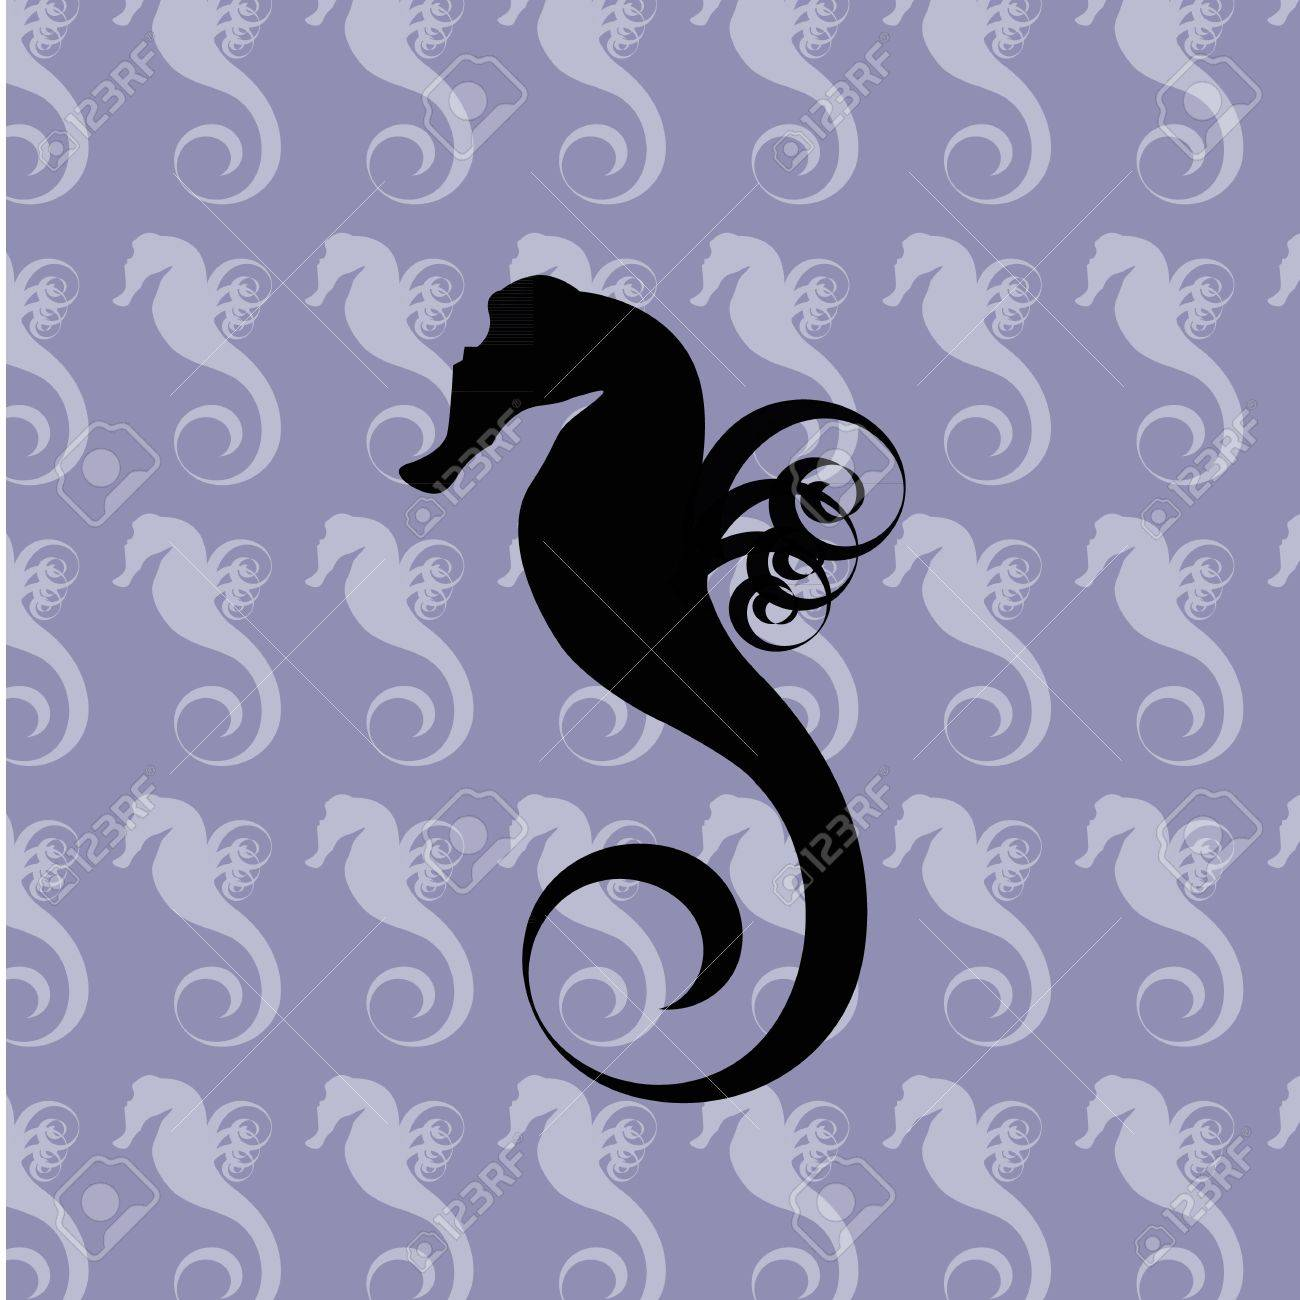 Black silhouette of a sea horse on the blue seamless background filled with light sea horses Stock Vector - 11043520